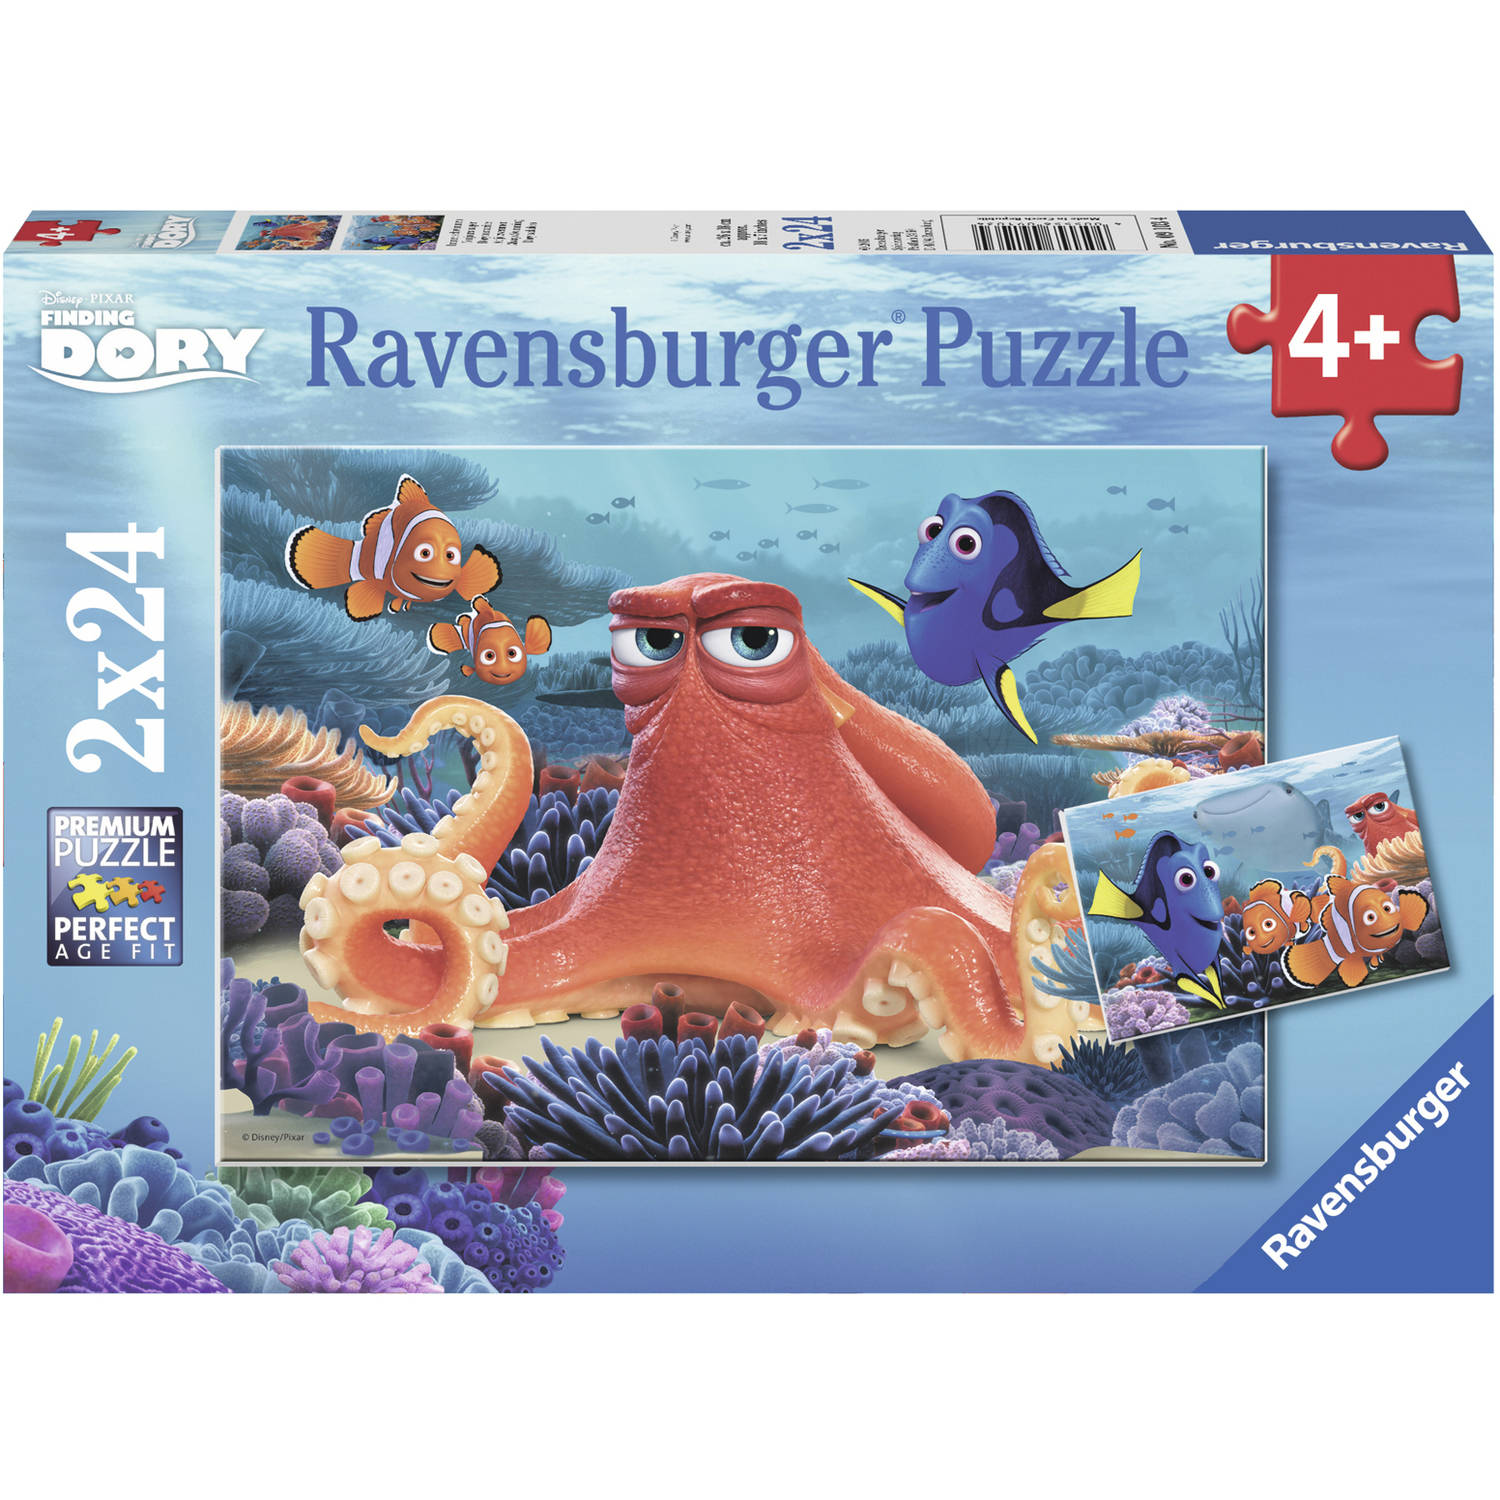 Ravensburger Disney Finding Dory Set of 2 Puzzles in a Box